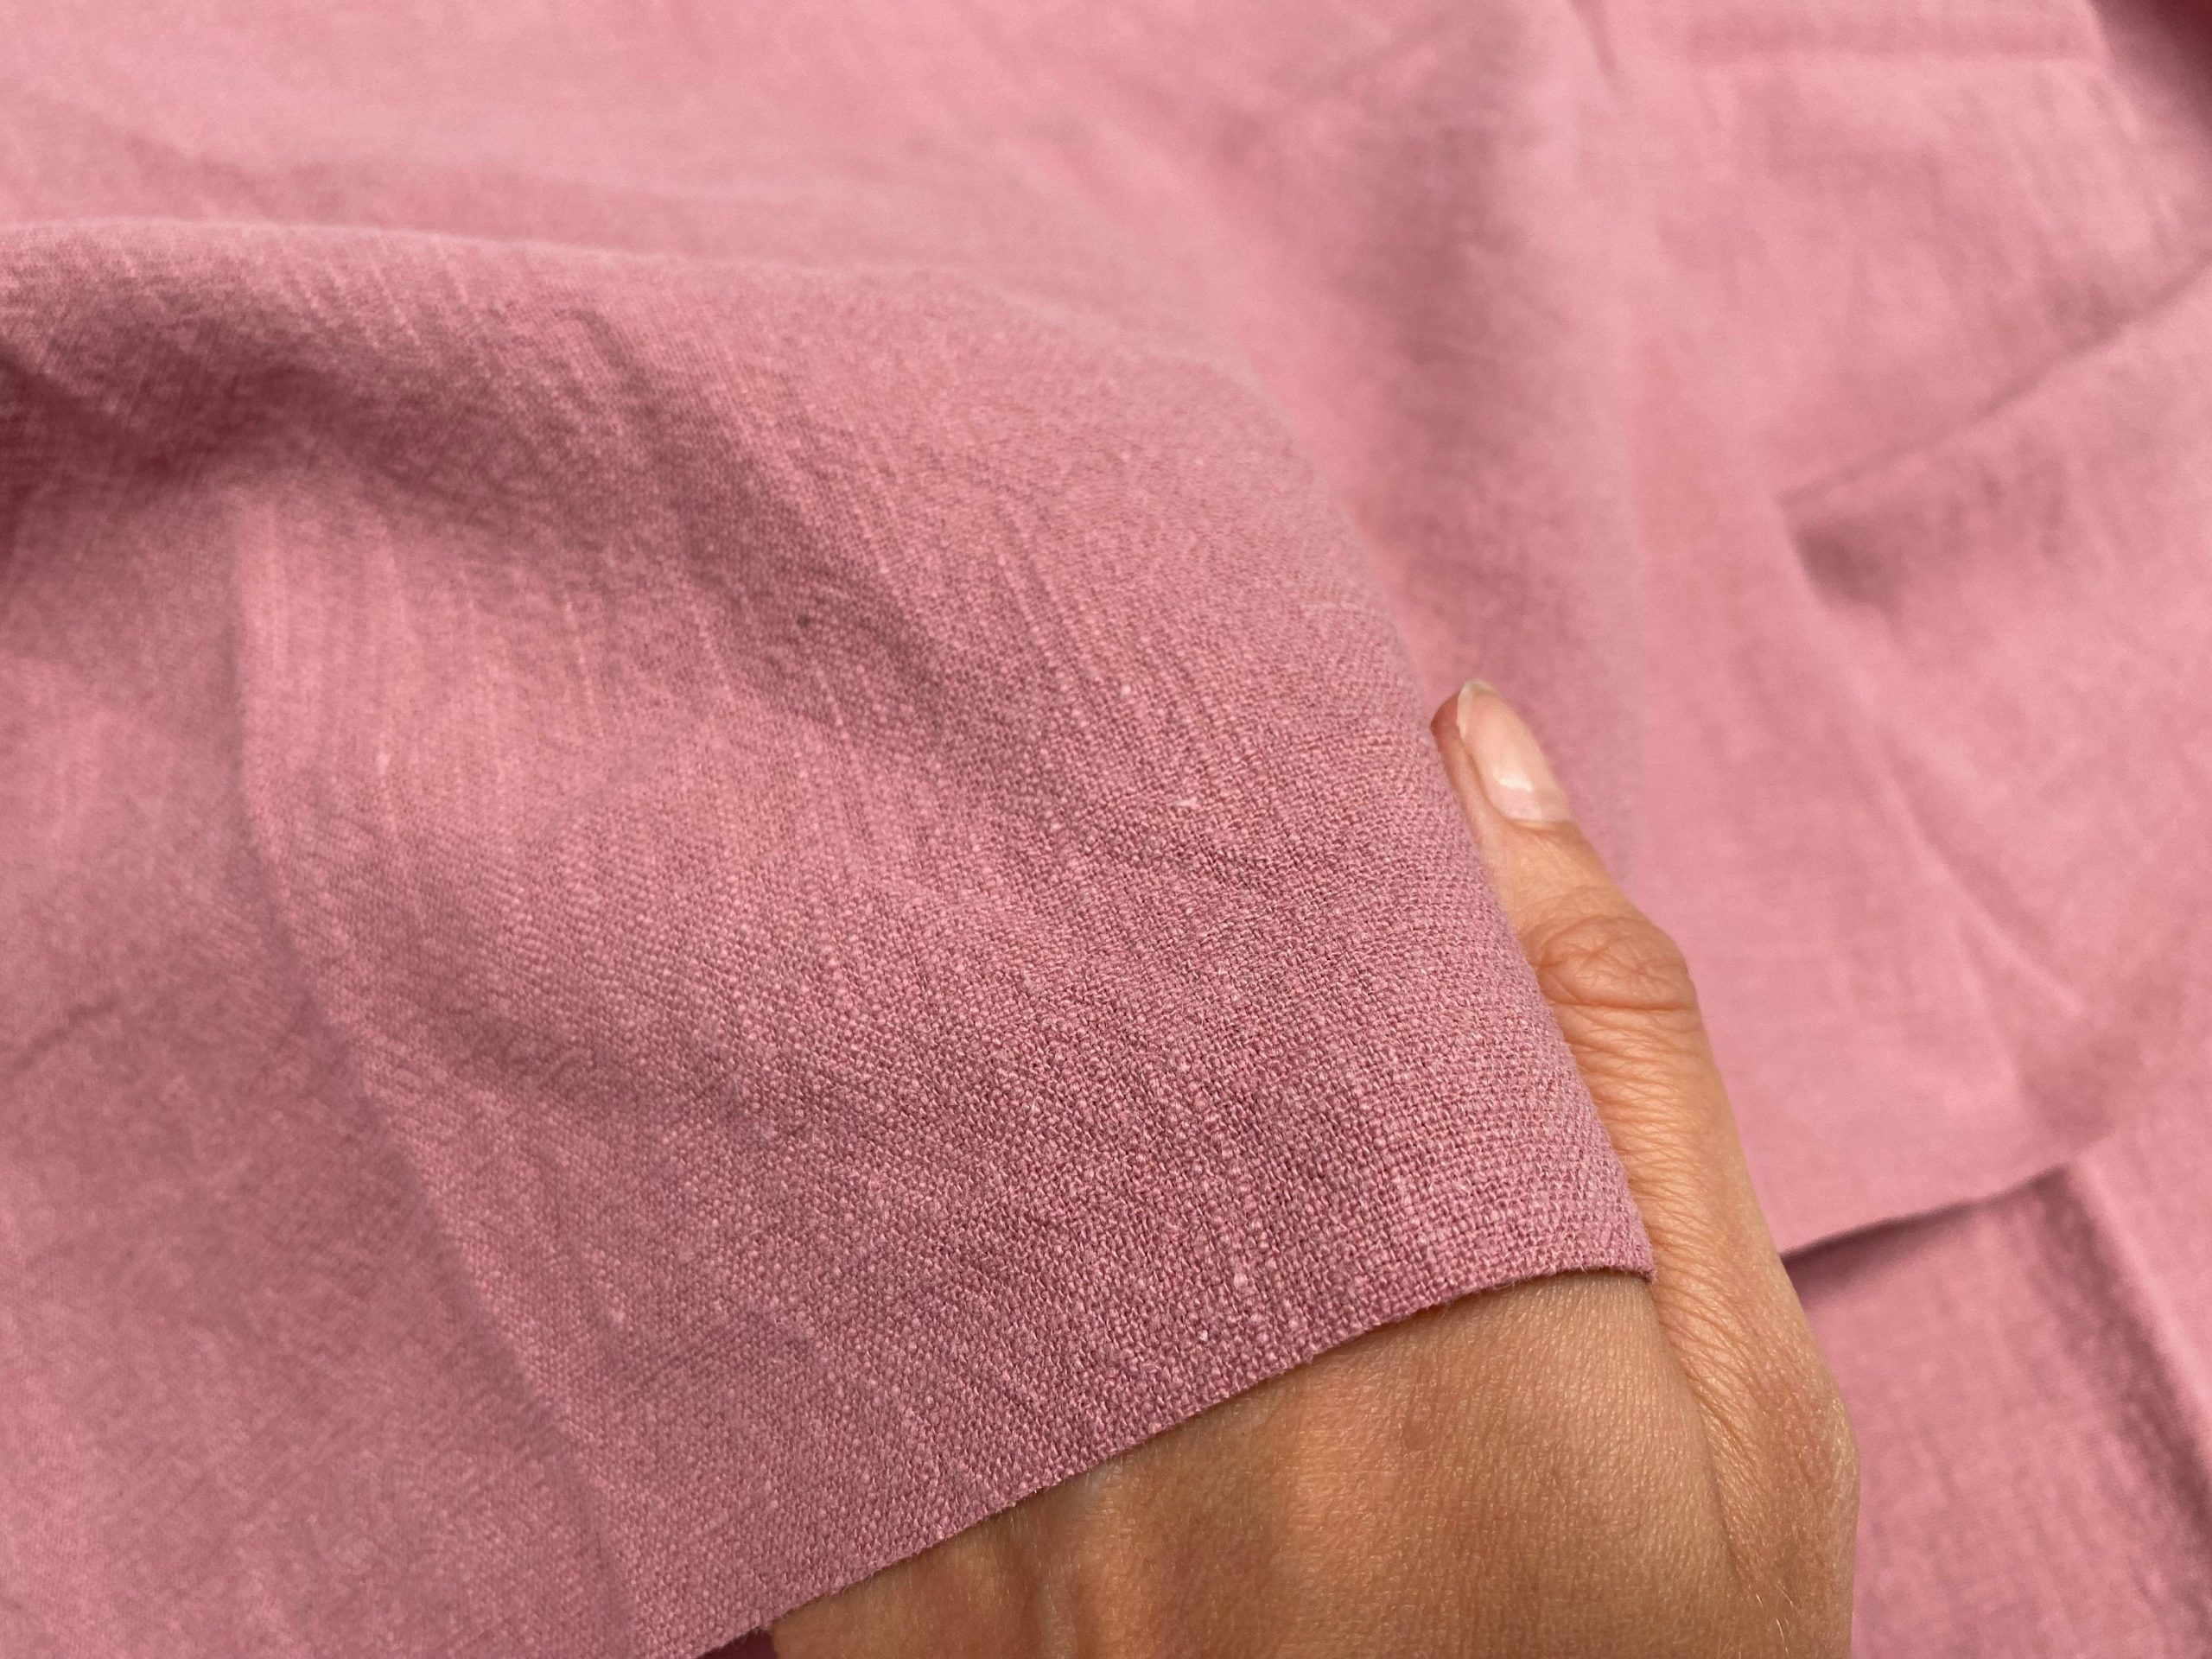 Dusty Pink Stone Washed Pure Plain Linen Fabric Material – 100% Linens Home Decor Bedding Clothes Curtains – 55″ 140cm Wide